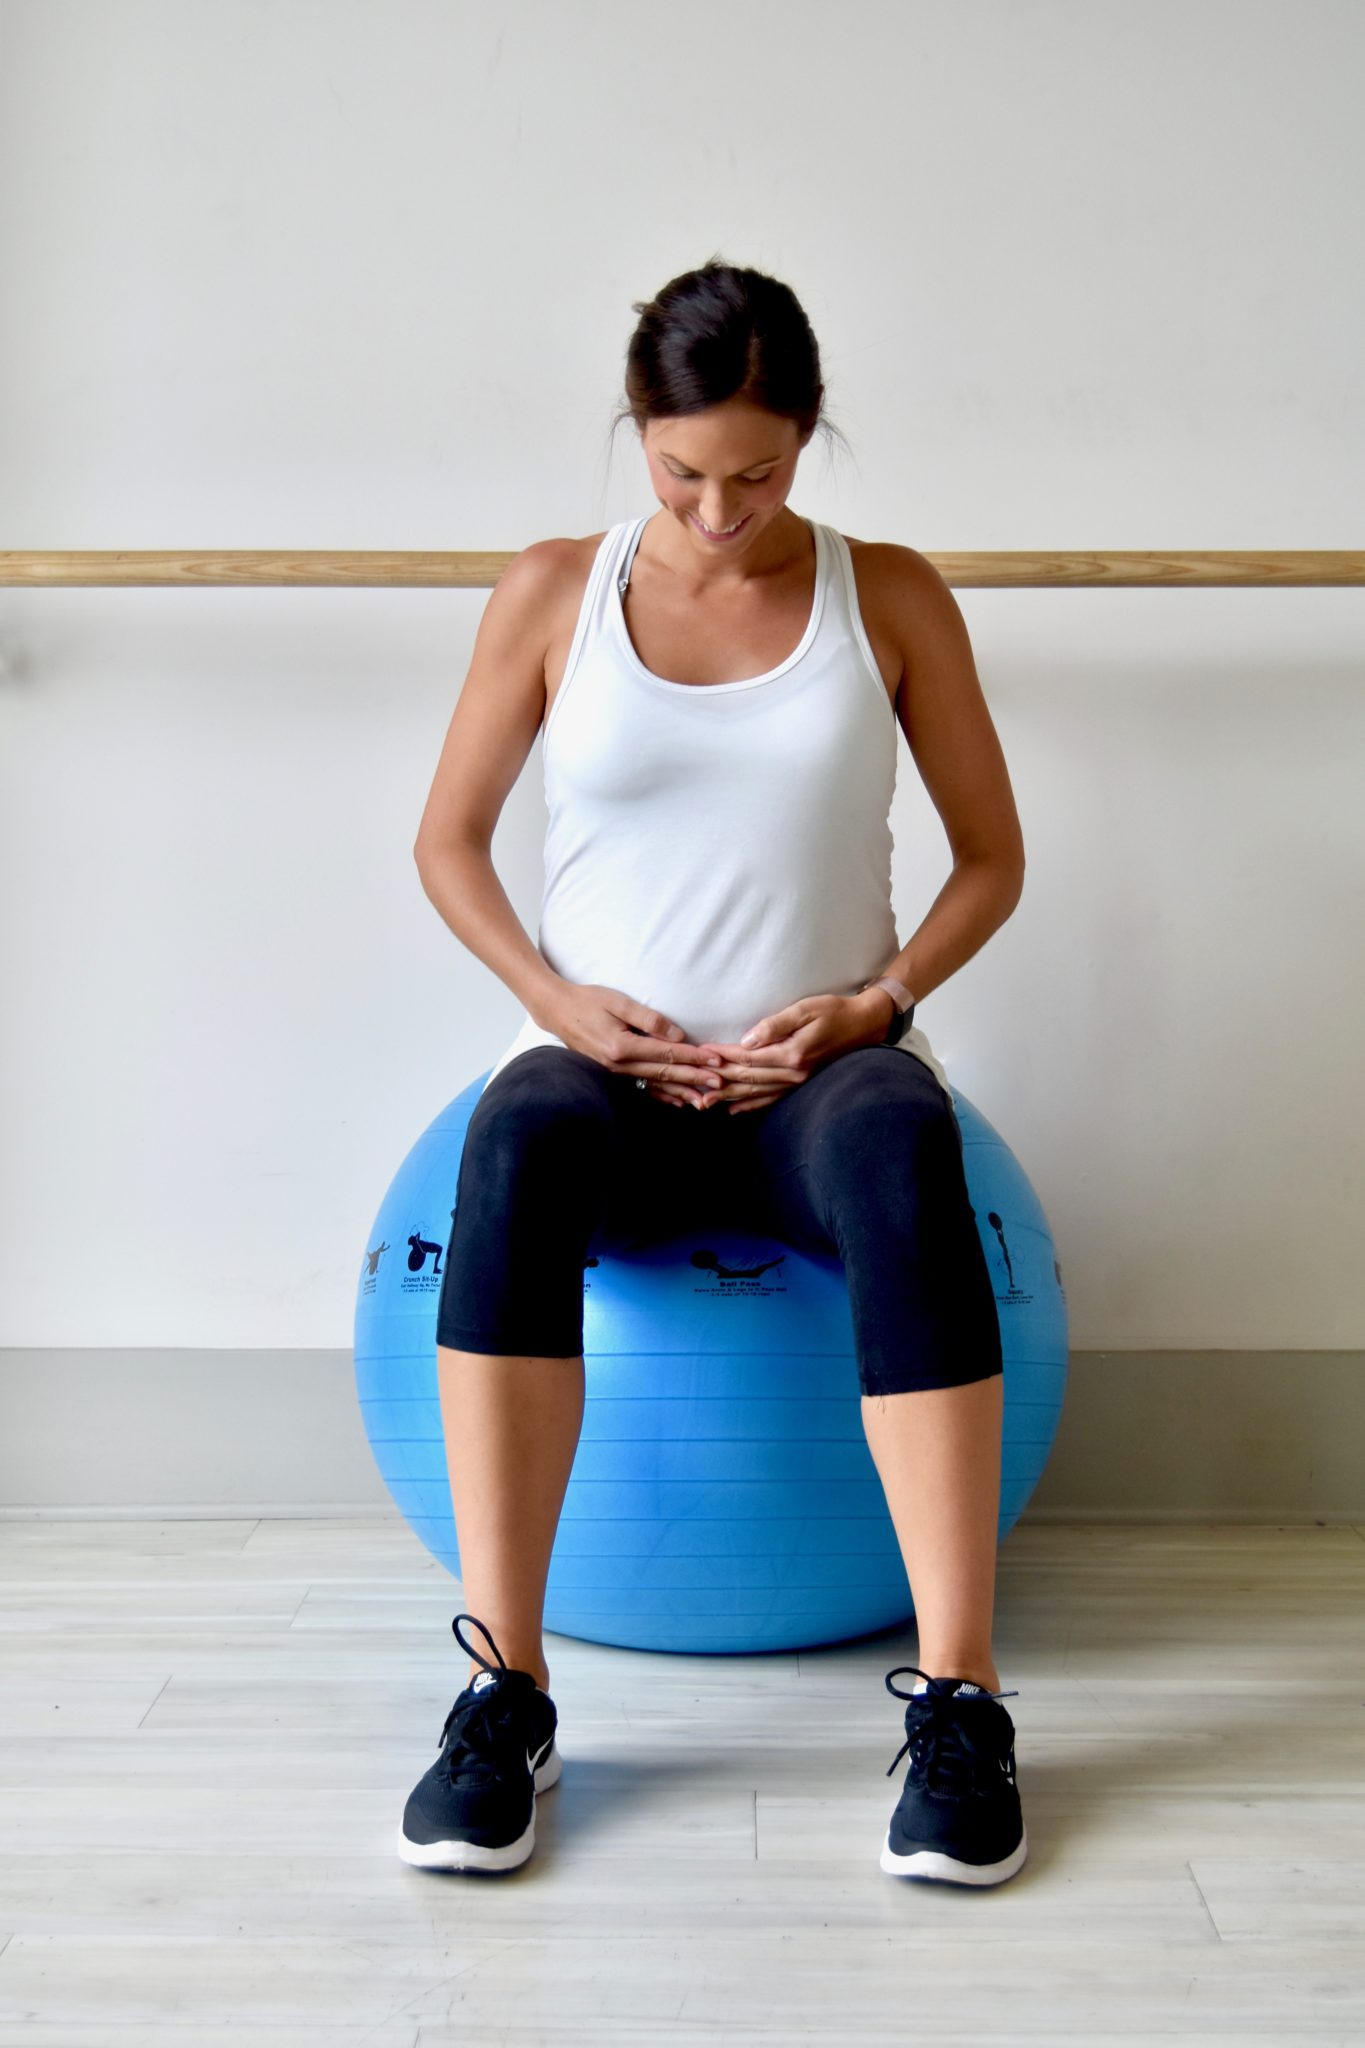 maternity workouts i'm loving // cait's plate